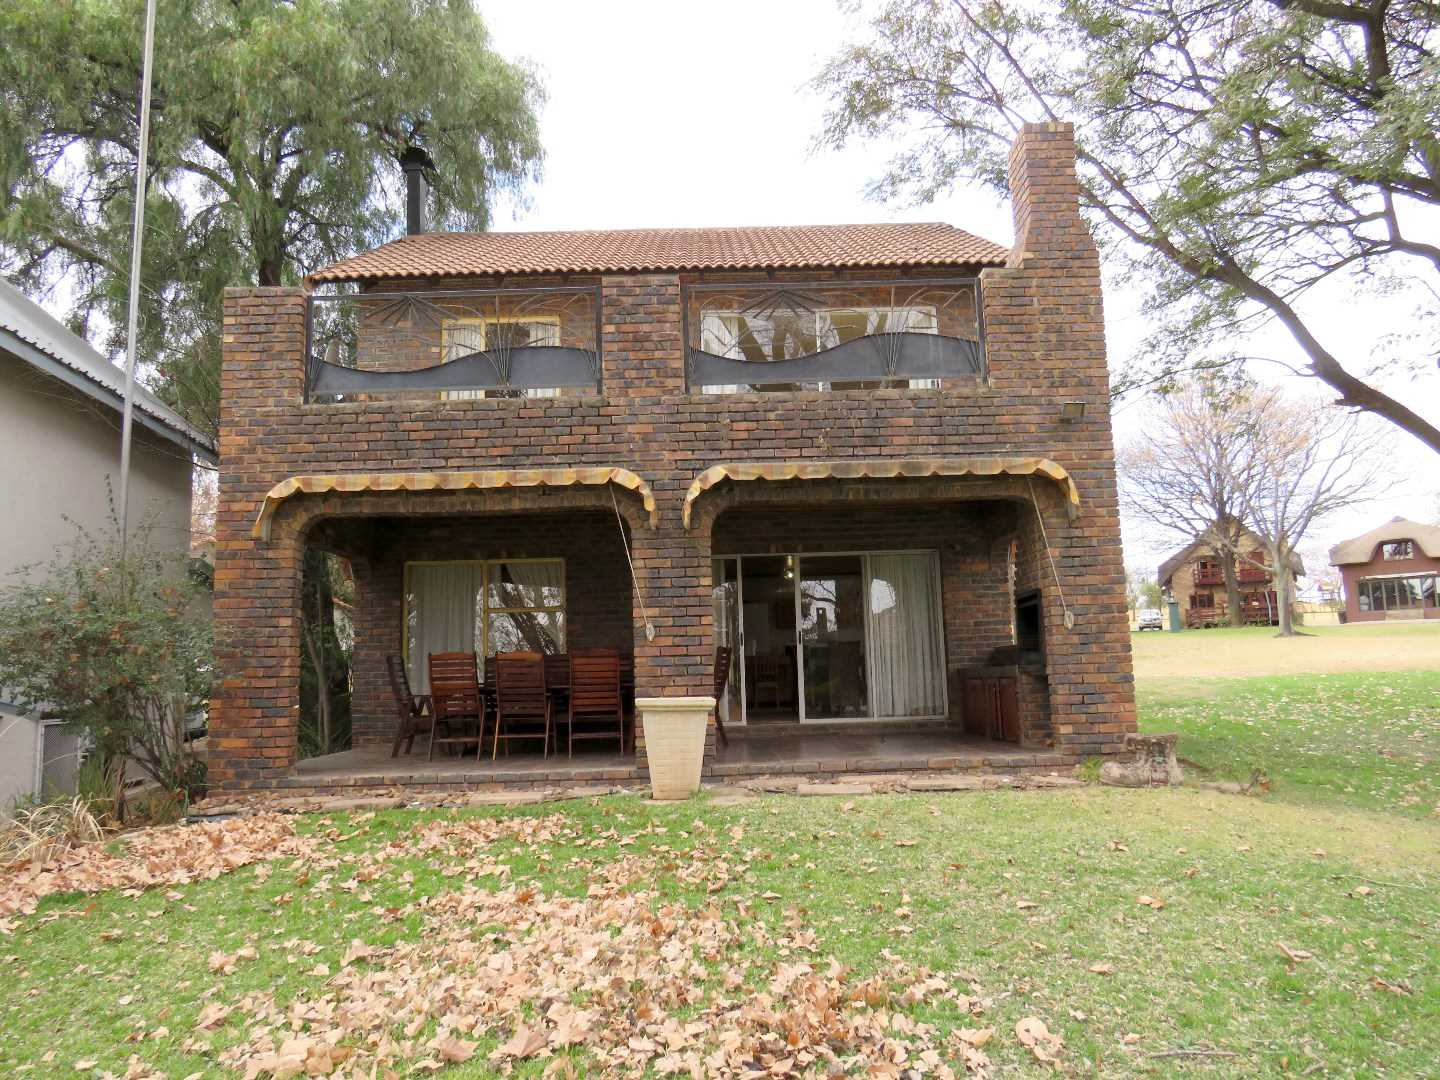 3 Bedroom Weekend Getaway Property Next To The Vaal River